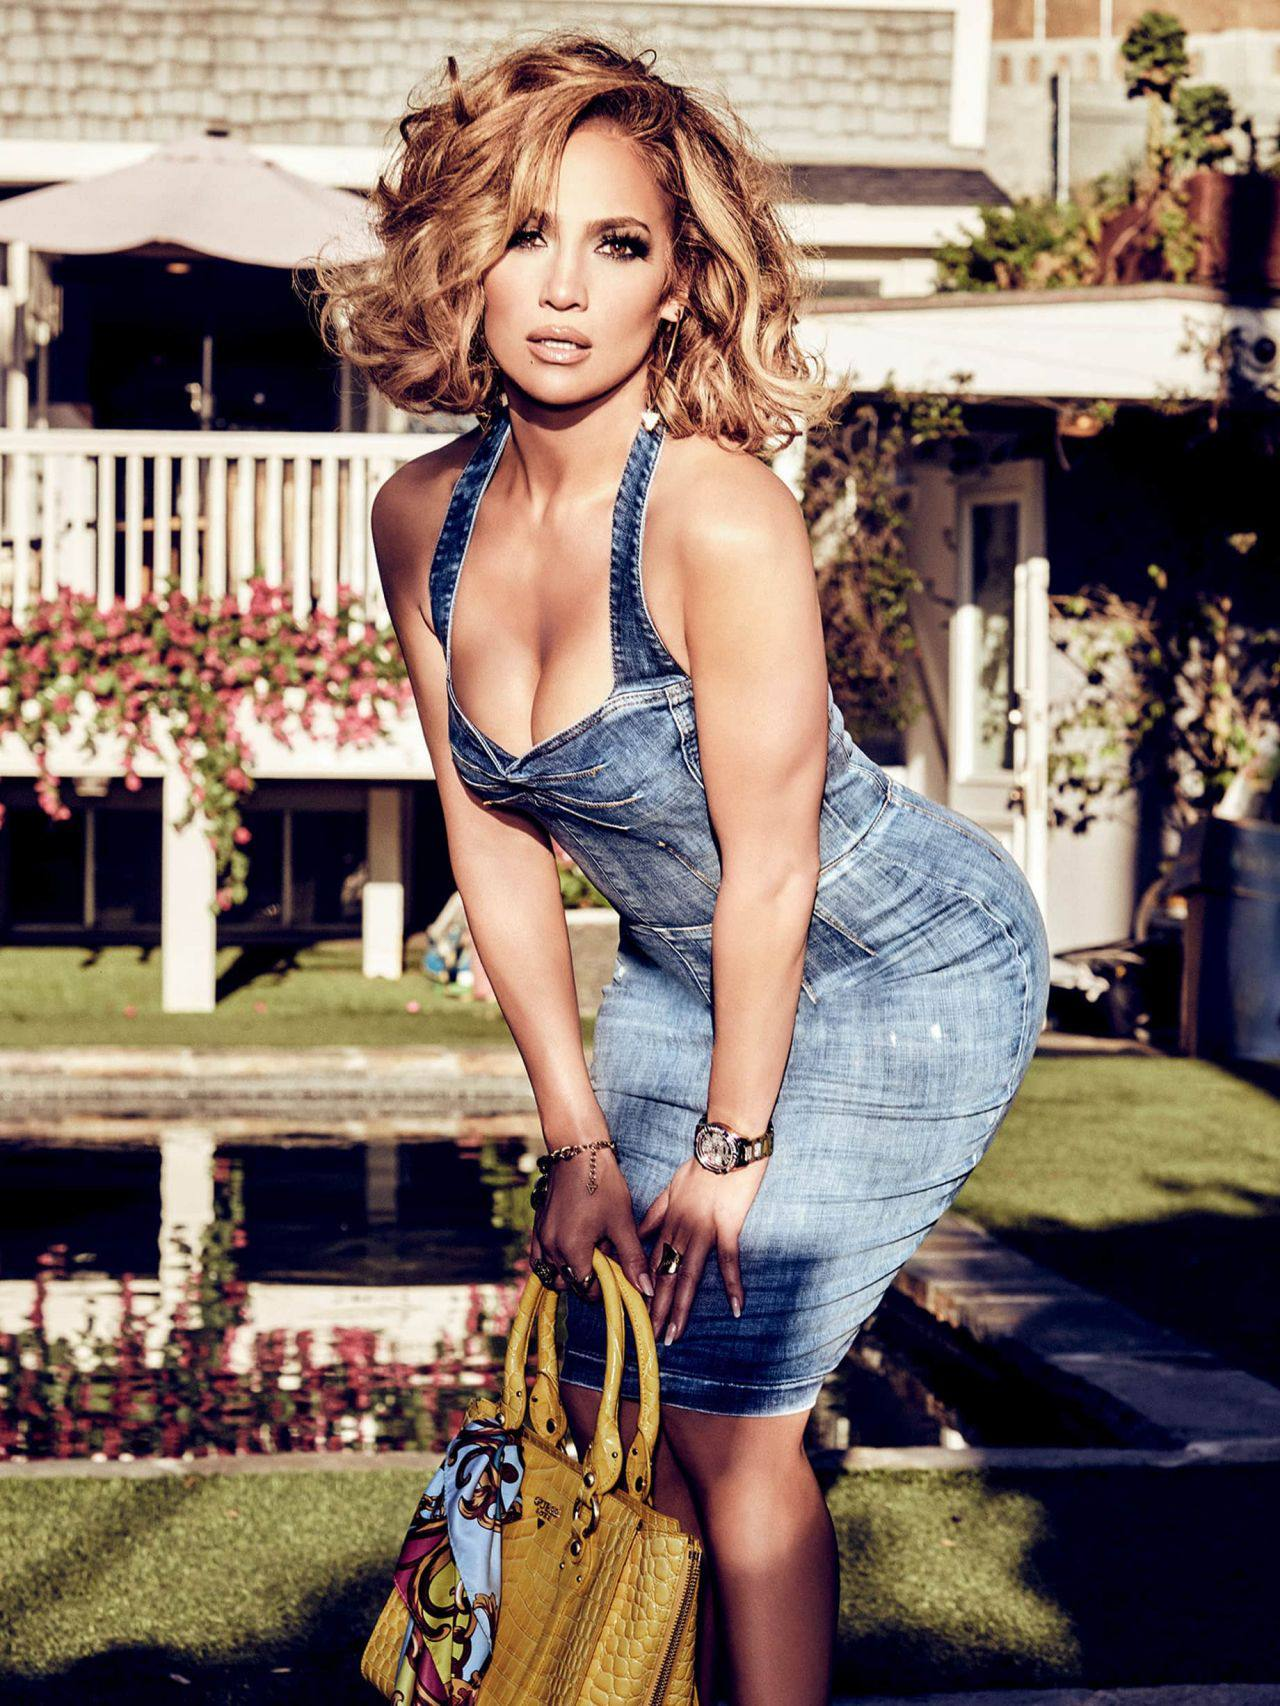 Jennifer Lopez – Sexy Boobs And Legs In Beautiful Photoshoot For Guess Spring Summer 2020 Campaign 0003